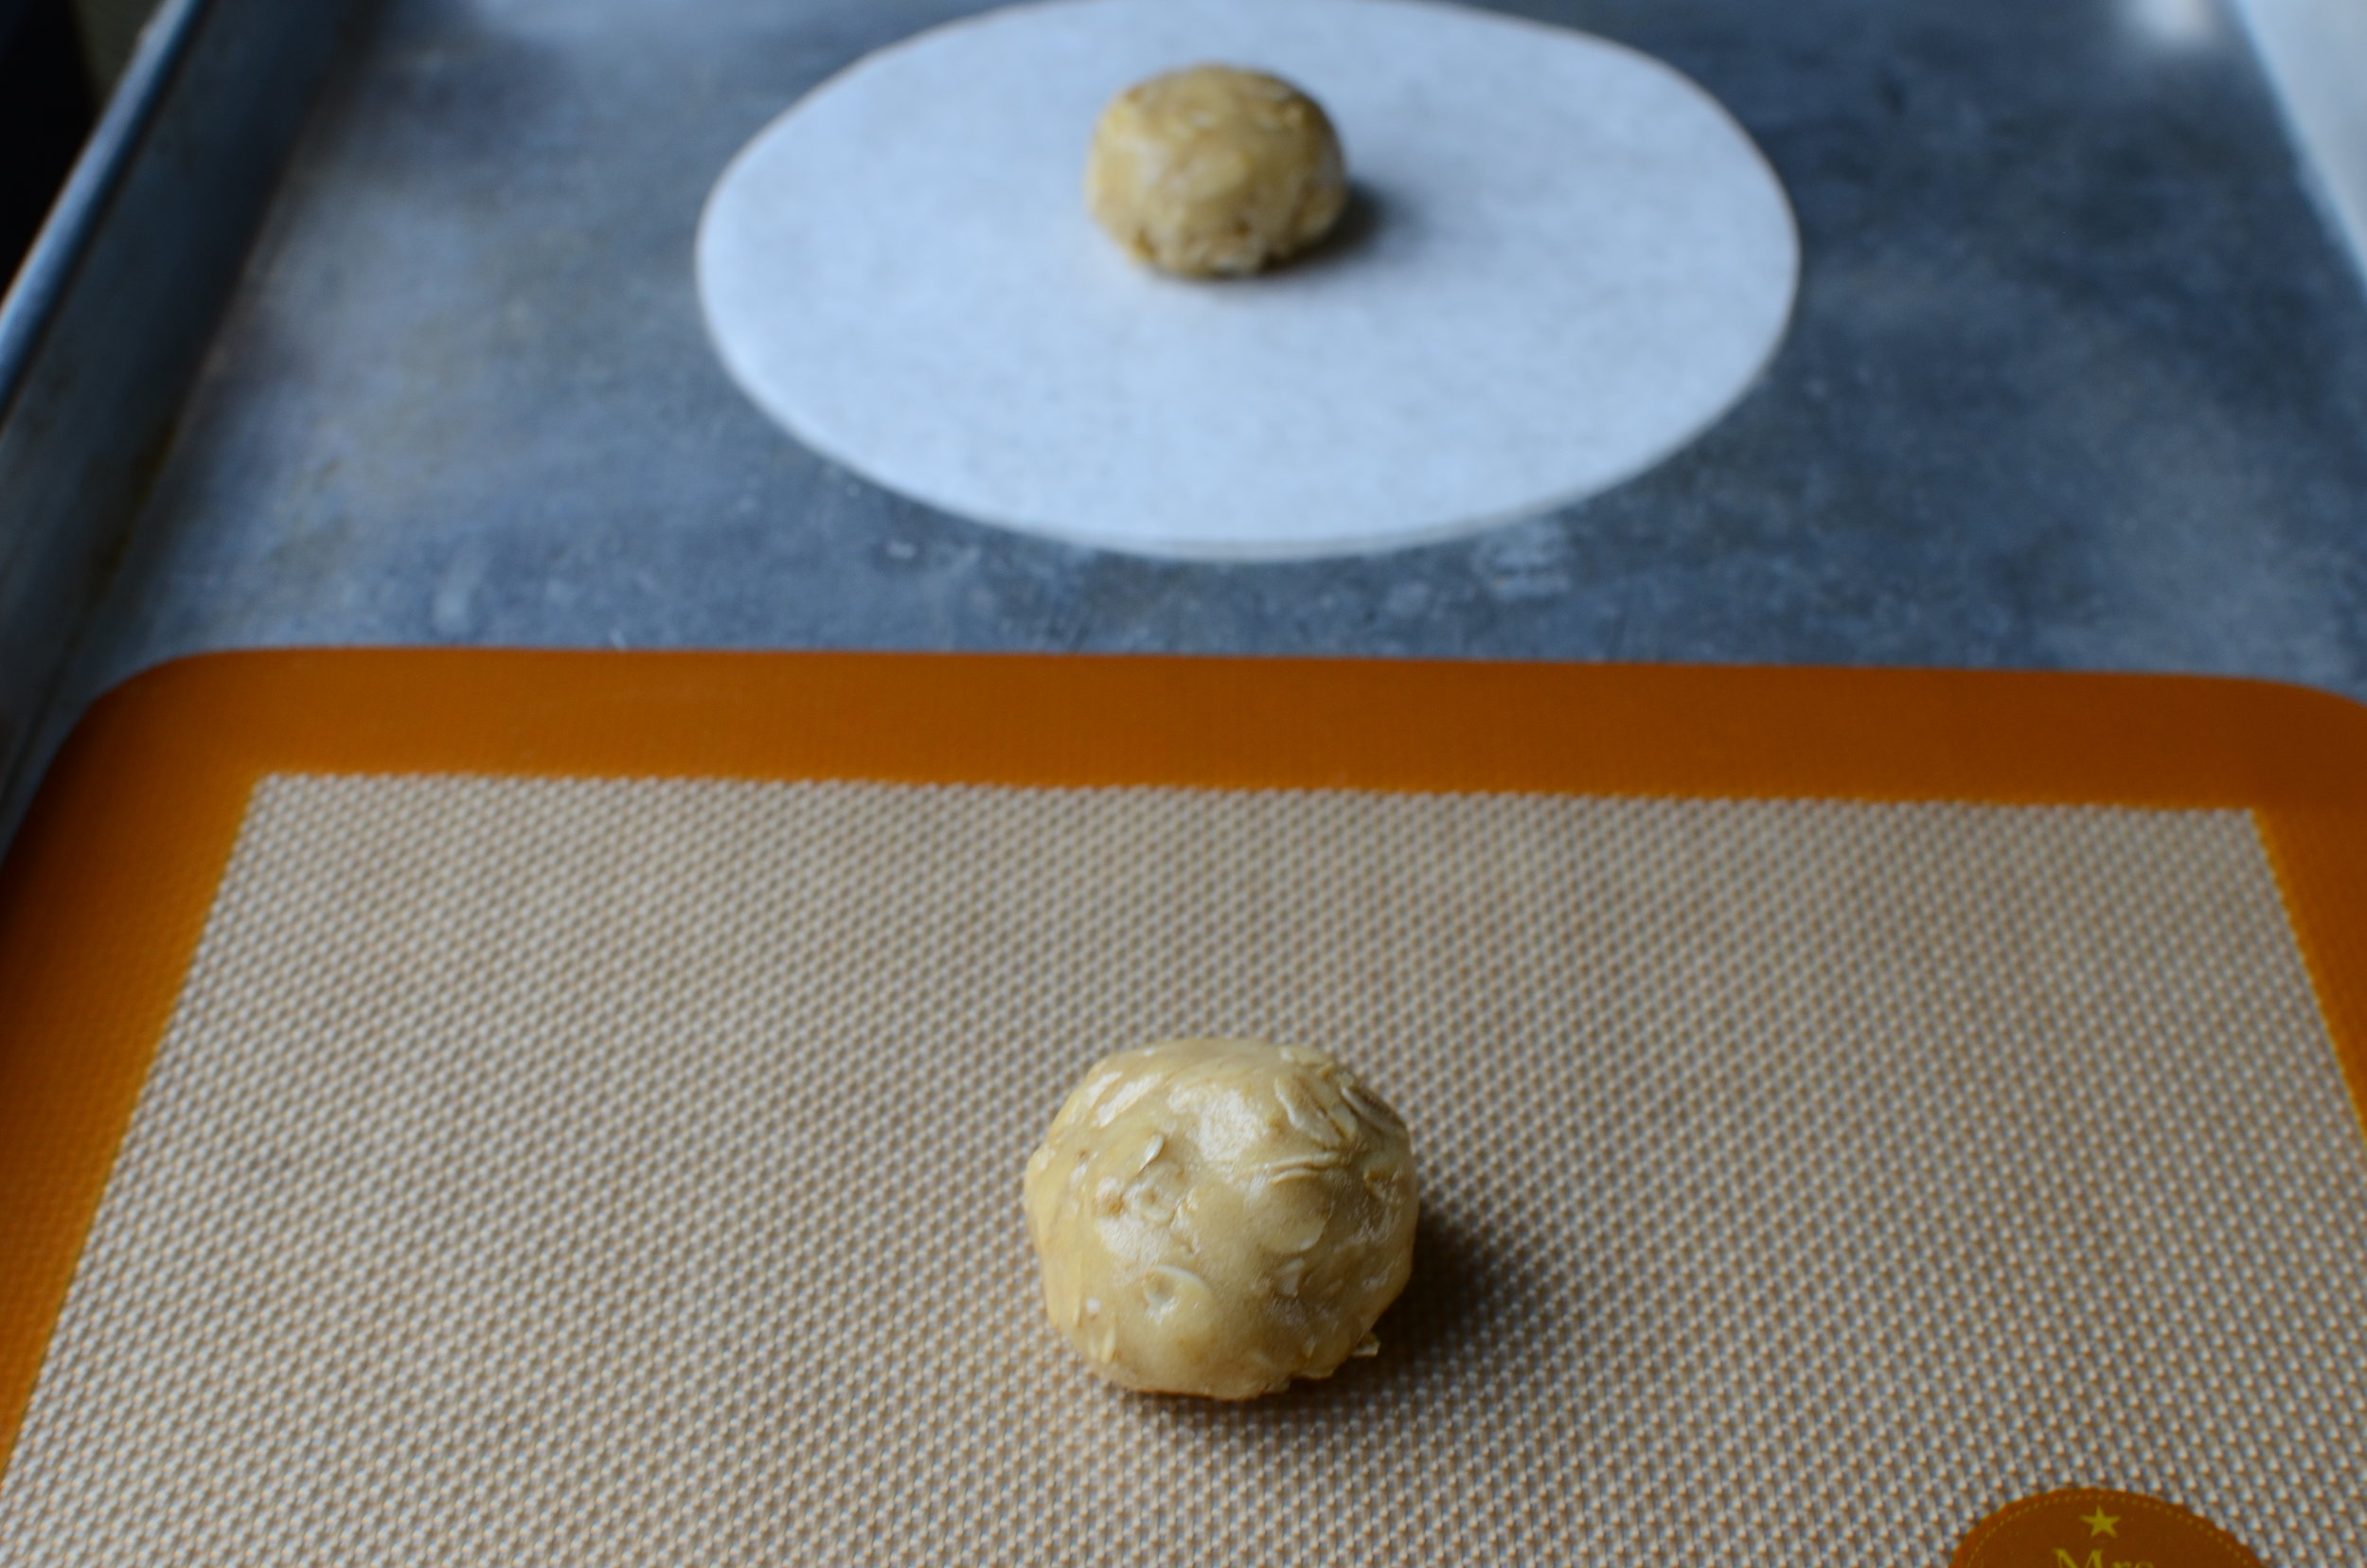 what's the best surface to bake cookies on?